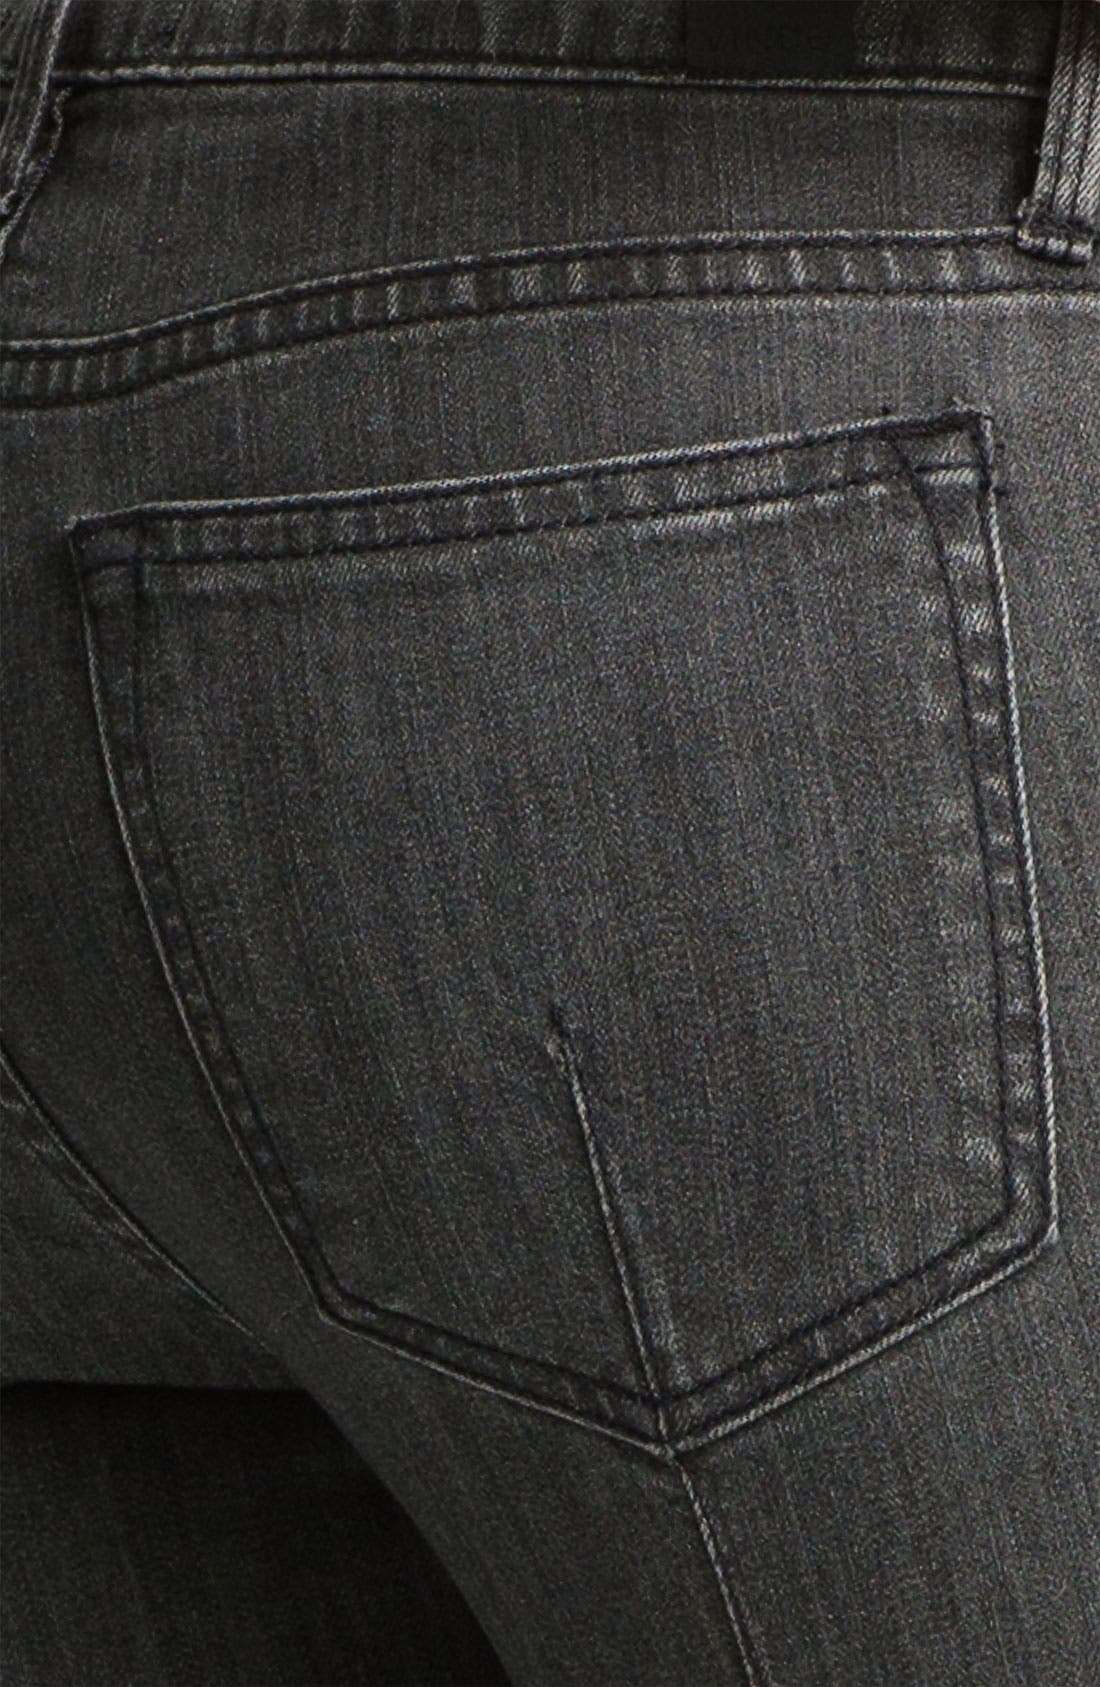 Stretch Skinny Jeans,                             Alternate thumbnail 3, color,                             034